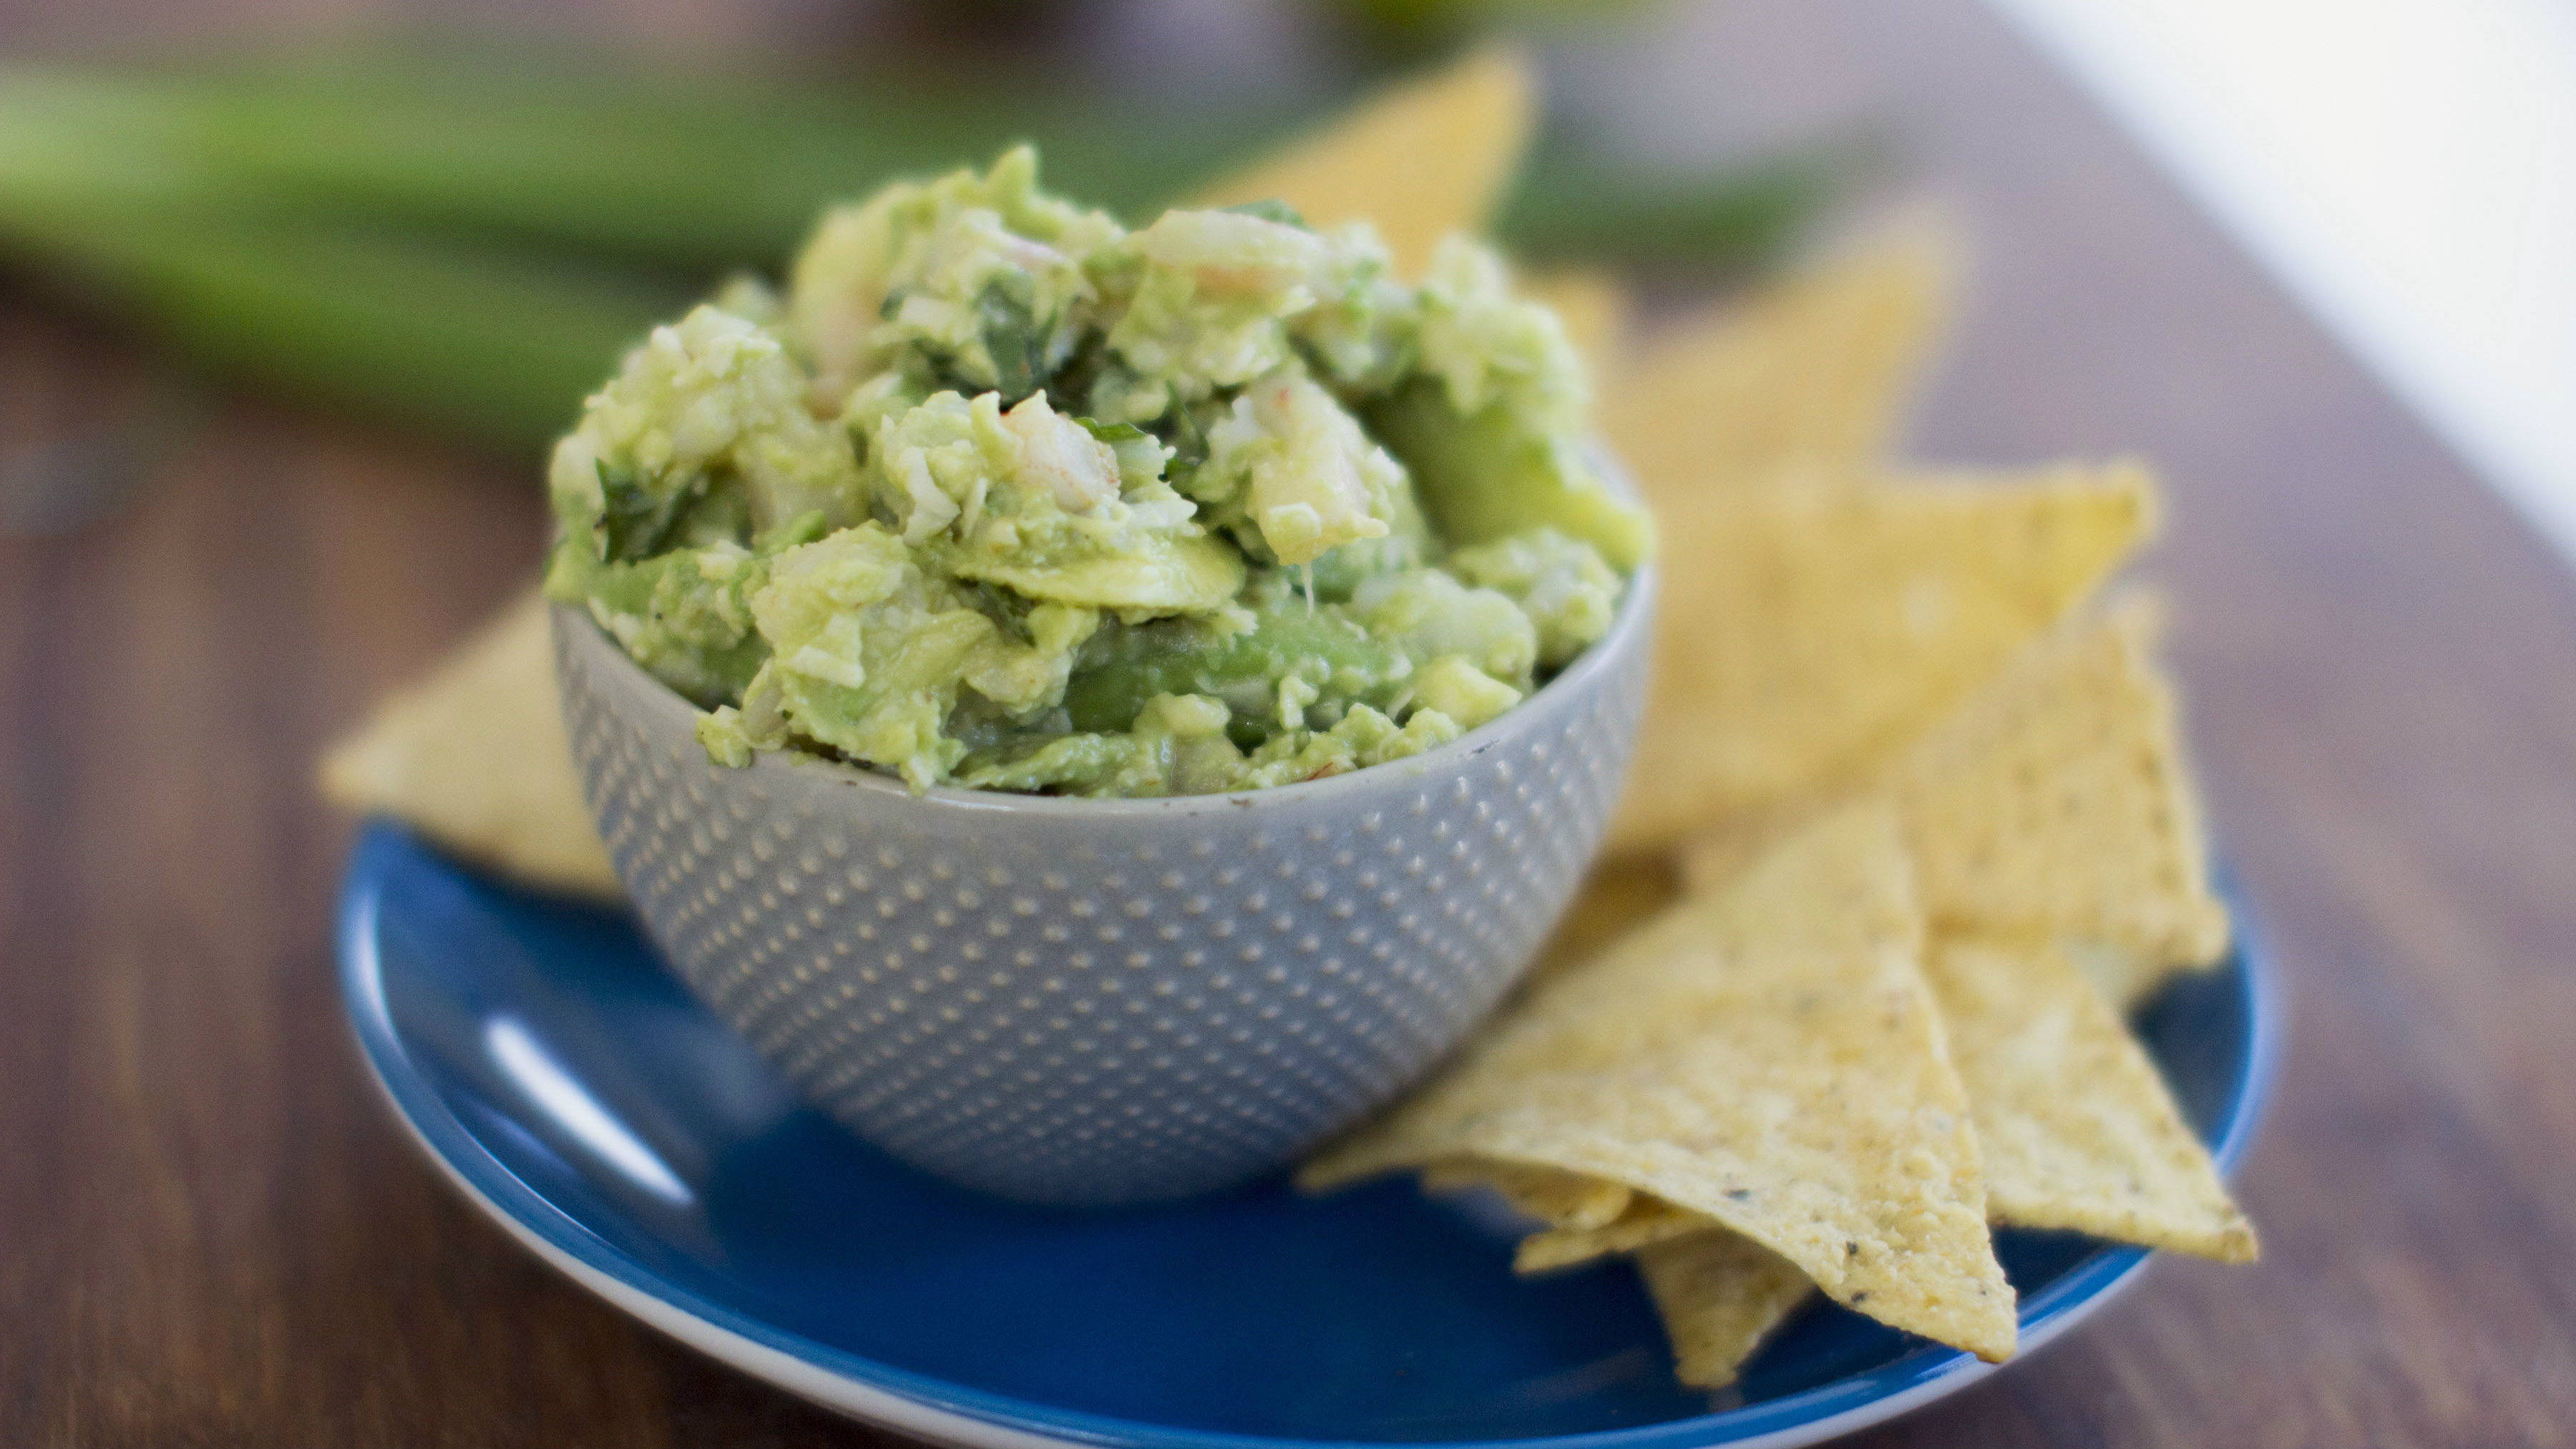 This Dec. 15, 2014 photo shows shrimp scampi guacamole in Concord, N.H. There are multiple ways to serve up guacamole for the Super Bowl. (AP Photo/Matthew Mead)